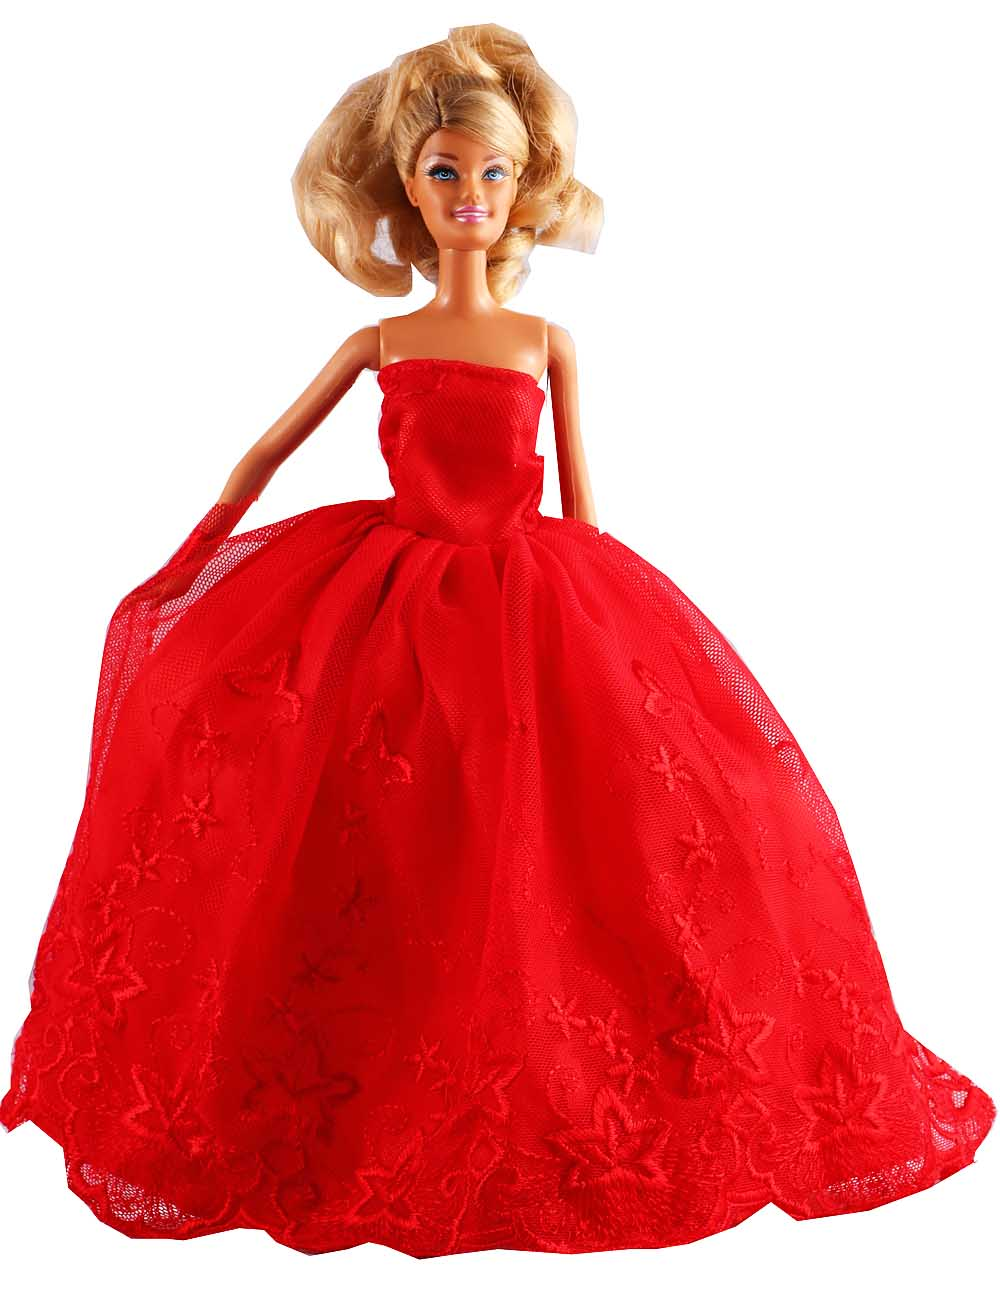 "New Fashion Handmade Red Lace Dress/Party Dress Clothes Gown For 11"" Barbie Doll D1084(China (Mainland))"